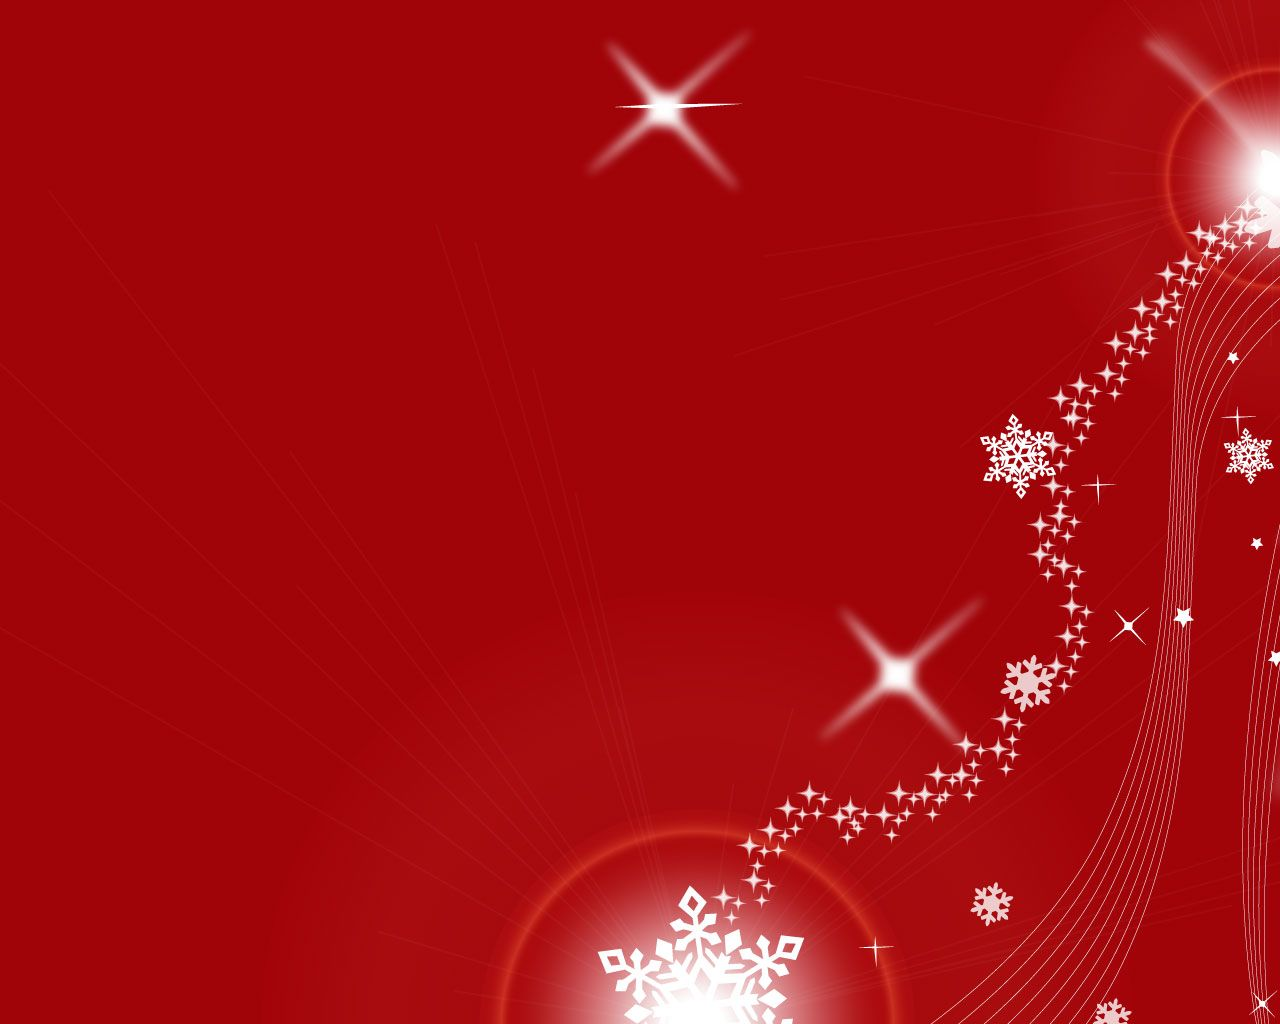 Animated Christmas PowerPoint Slides | Free Christian Wallpaper for ...